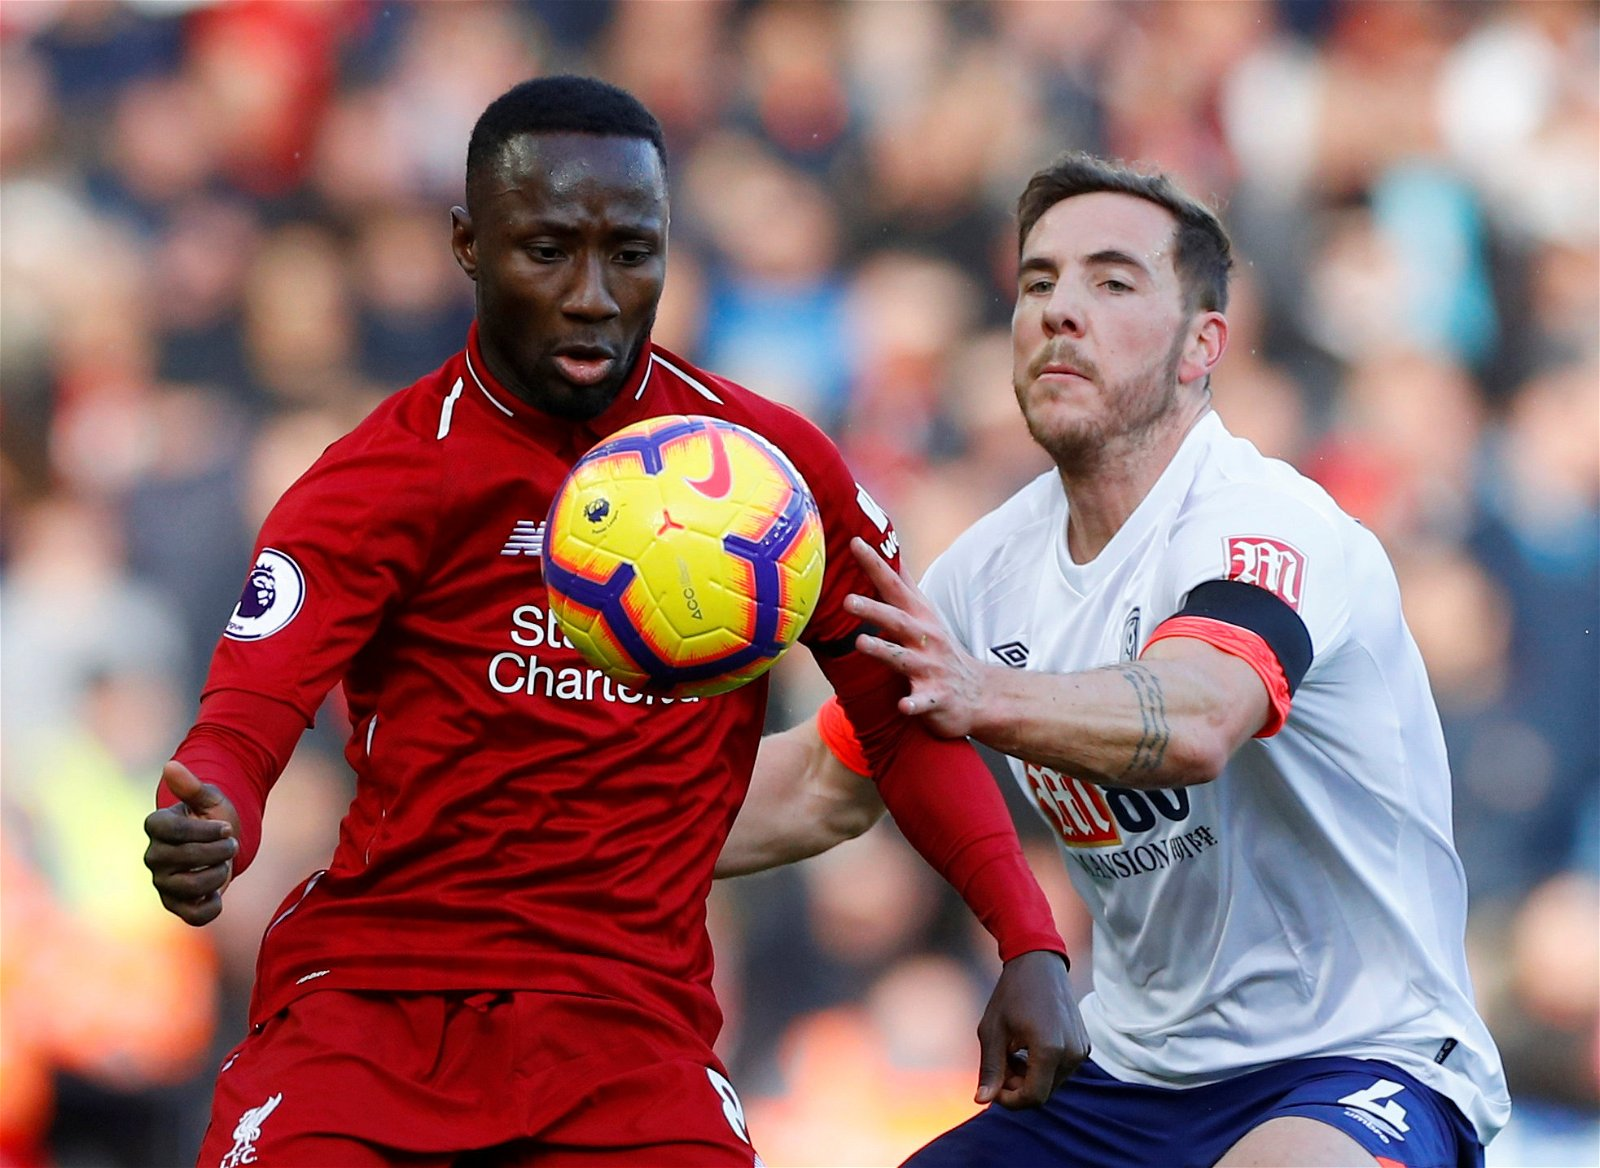 Keita in action against Bournemouth at Anfield